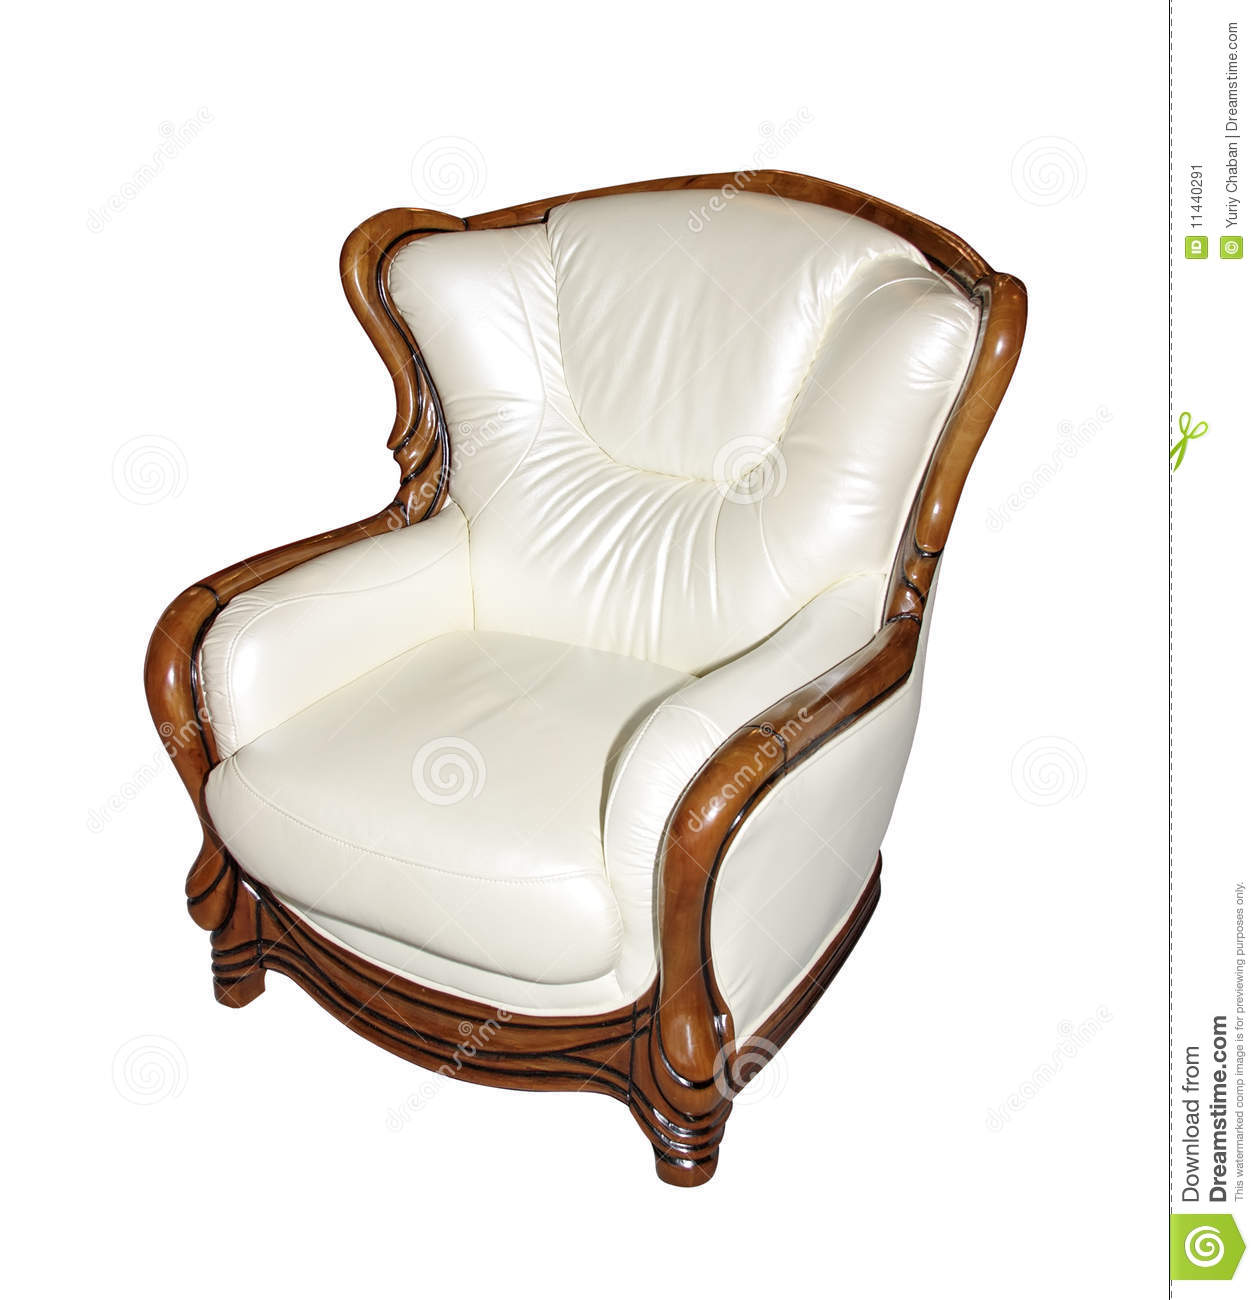 Cosy leather armchair stock image. Image of business ...